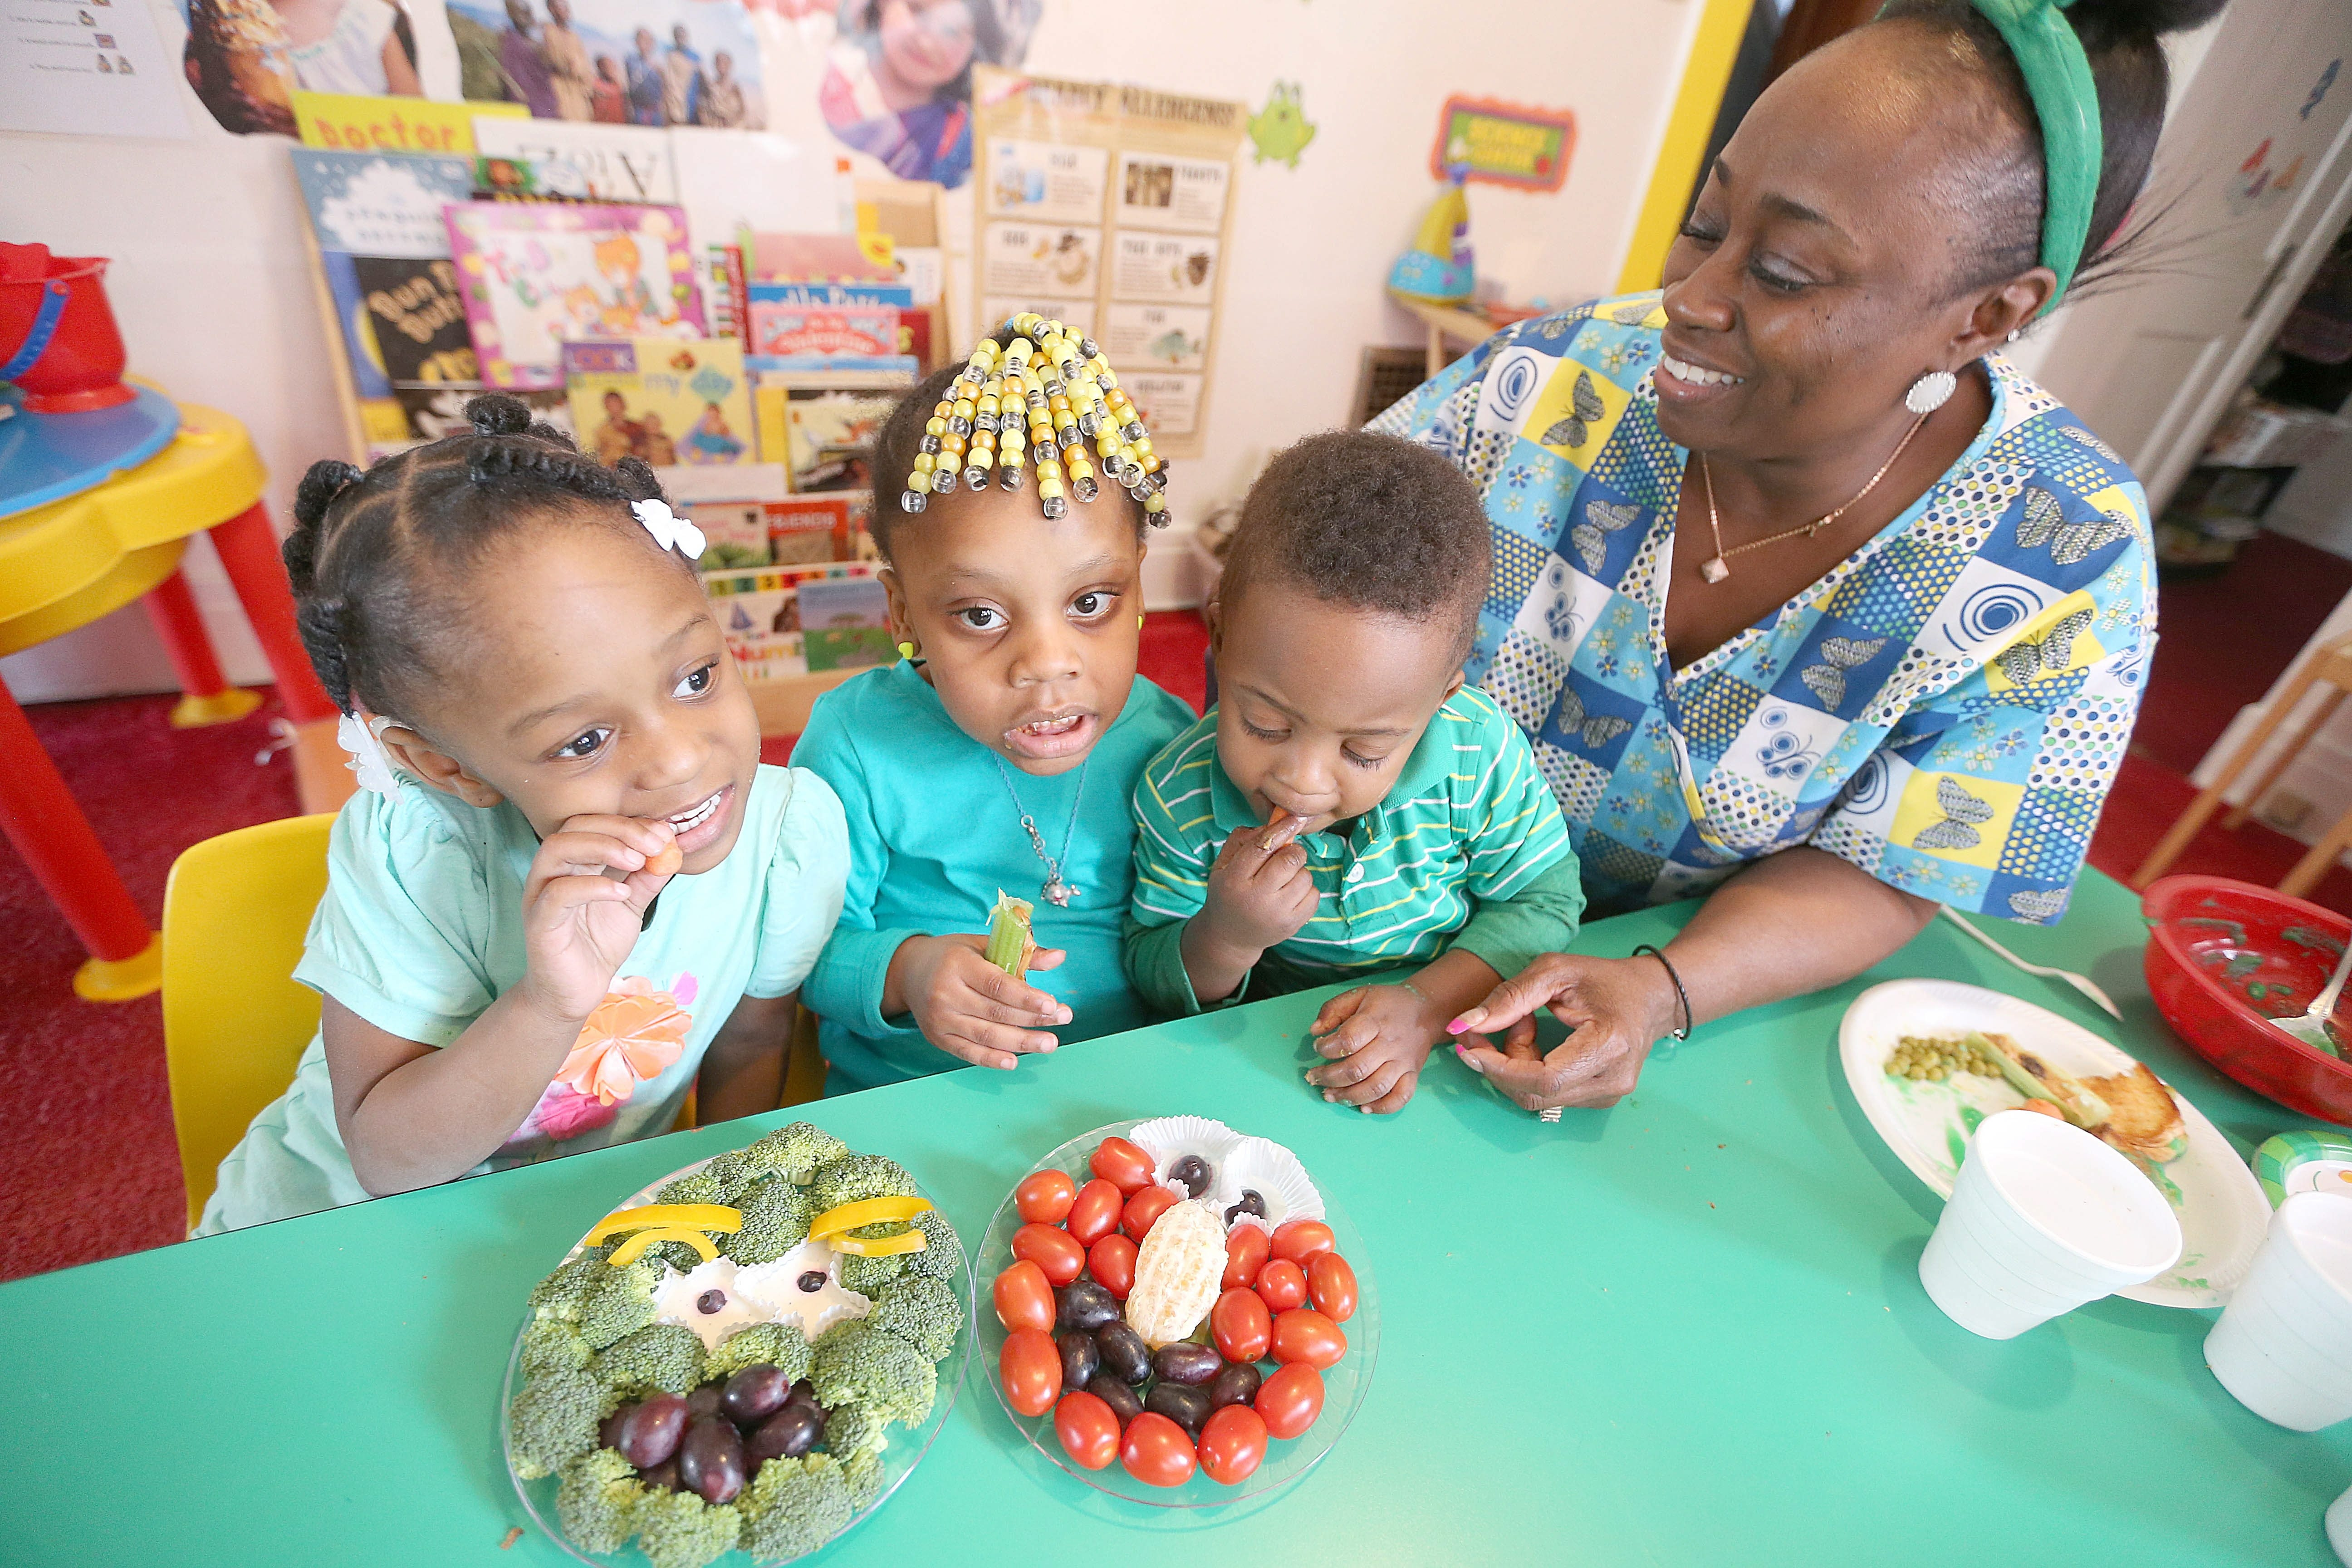 From left, Kennedy Jackson, 4, Trinity Simmons, 3, and Josiah Hutchinson, 2, munch on healthy snacks with Renee Benning at Something Special Day Care in the University District.